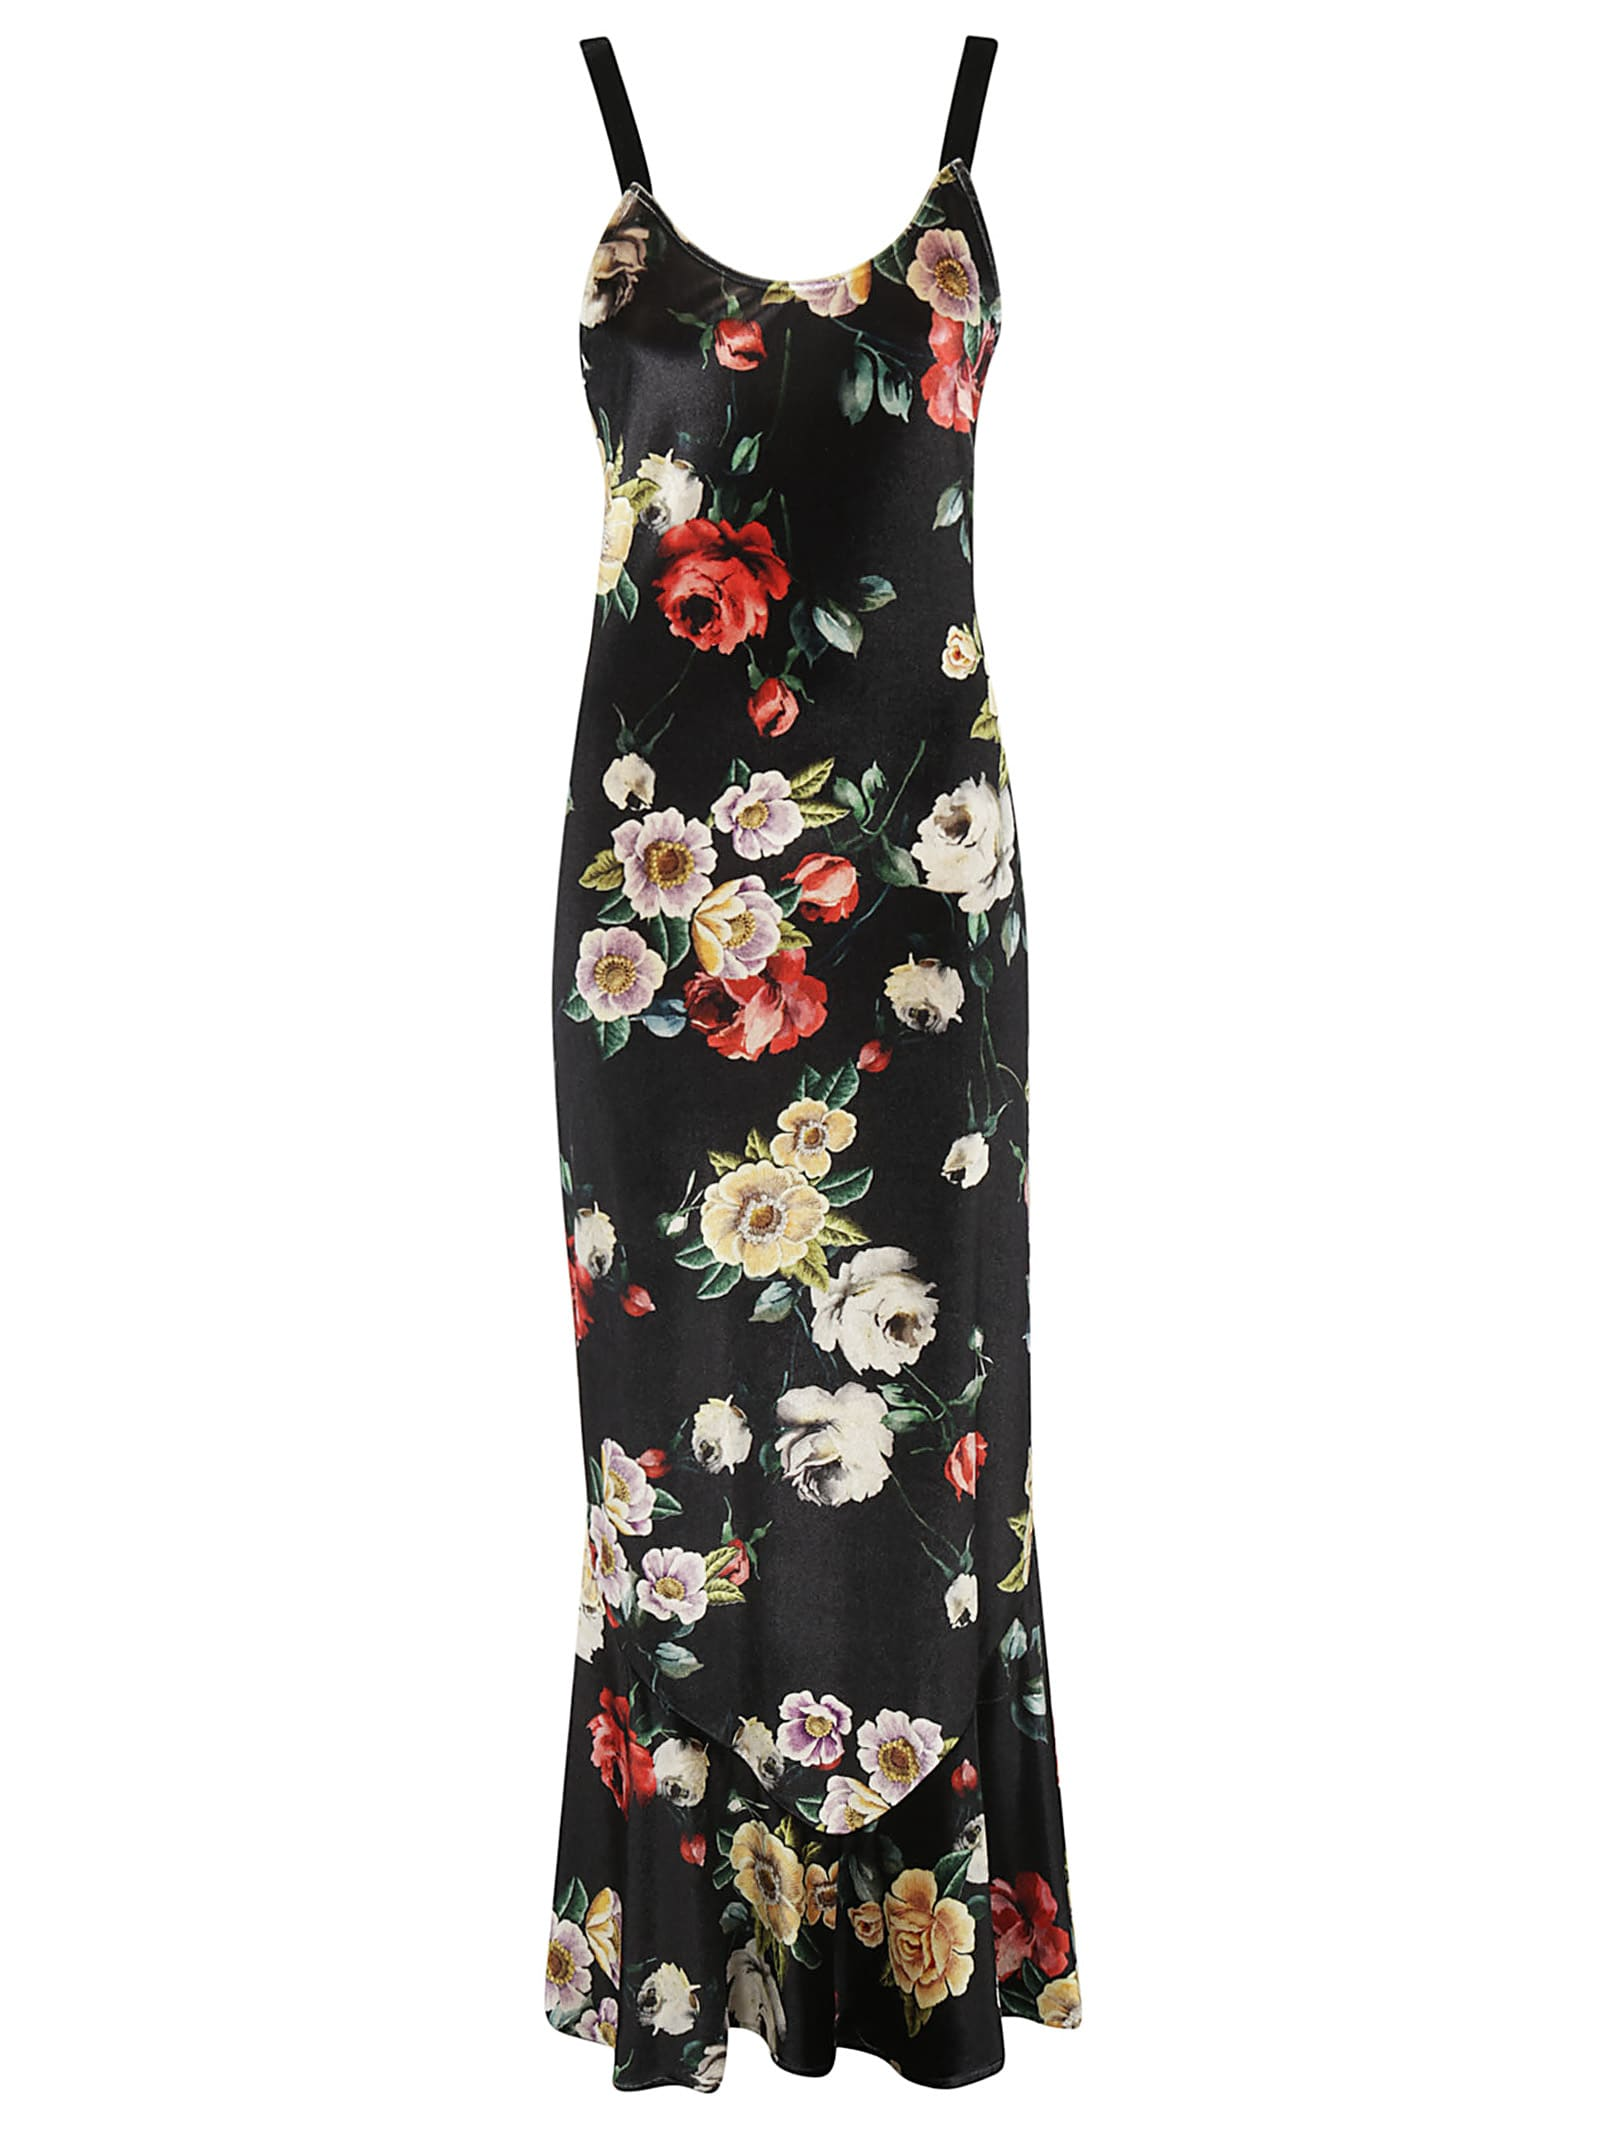 The Attico Floral Long Dress